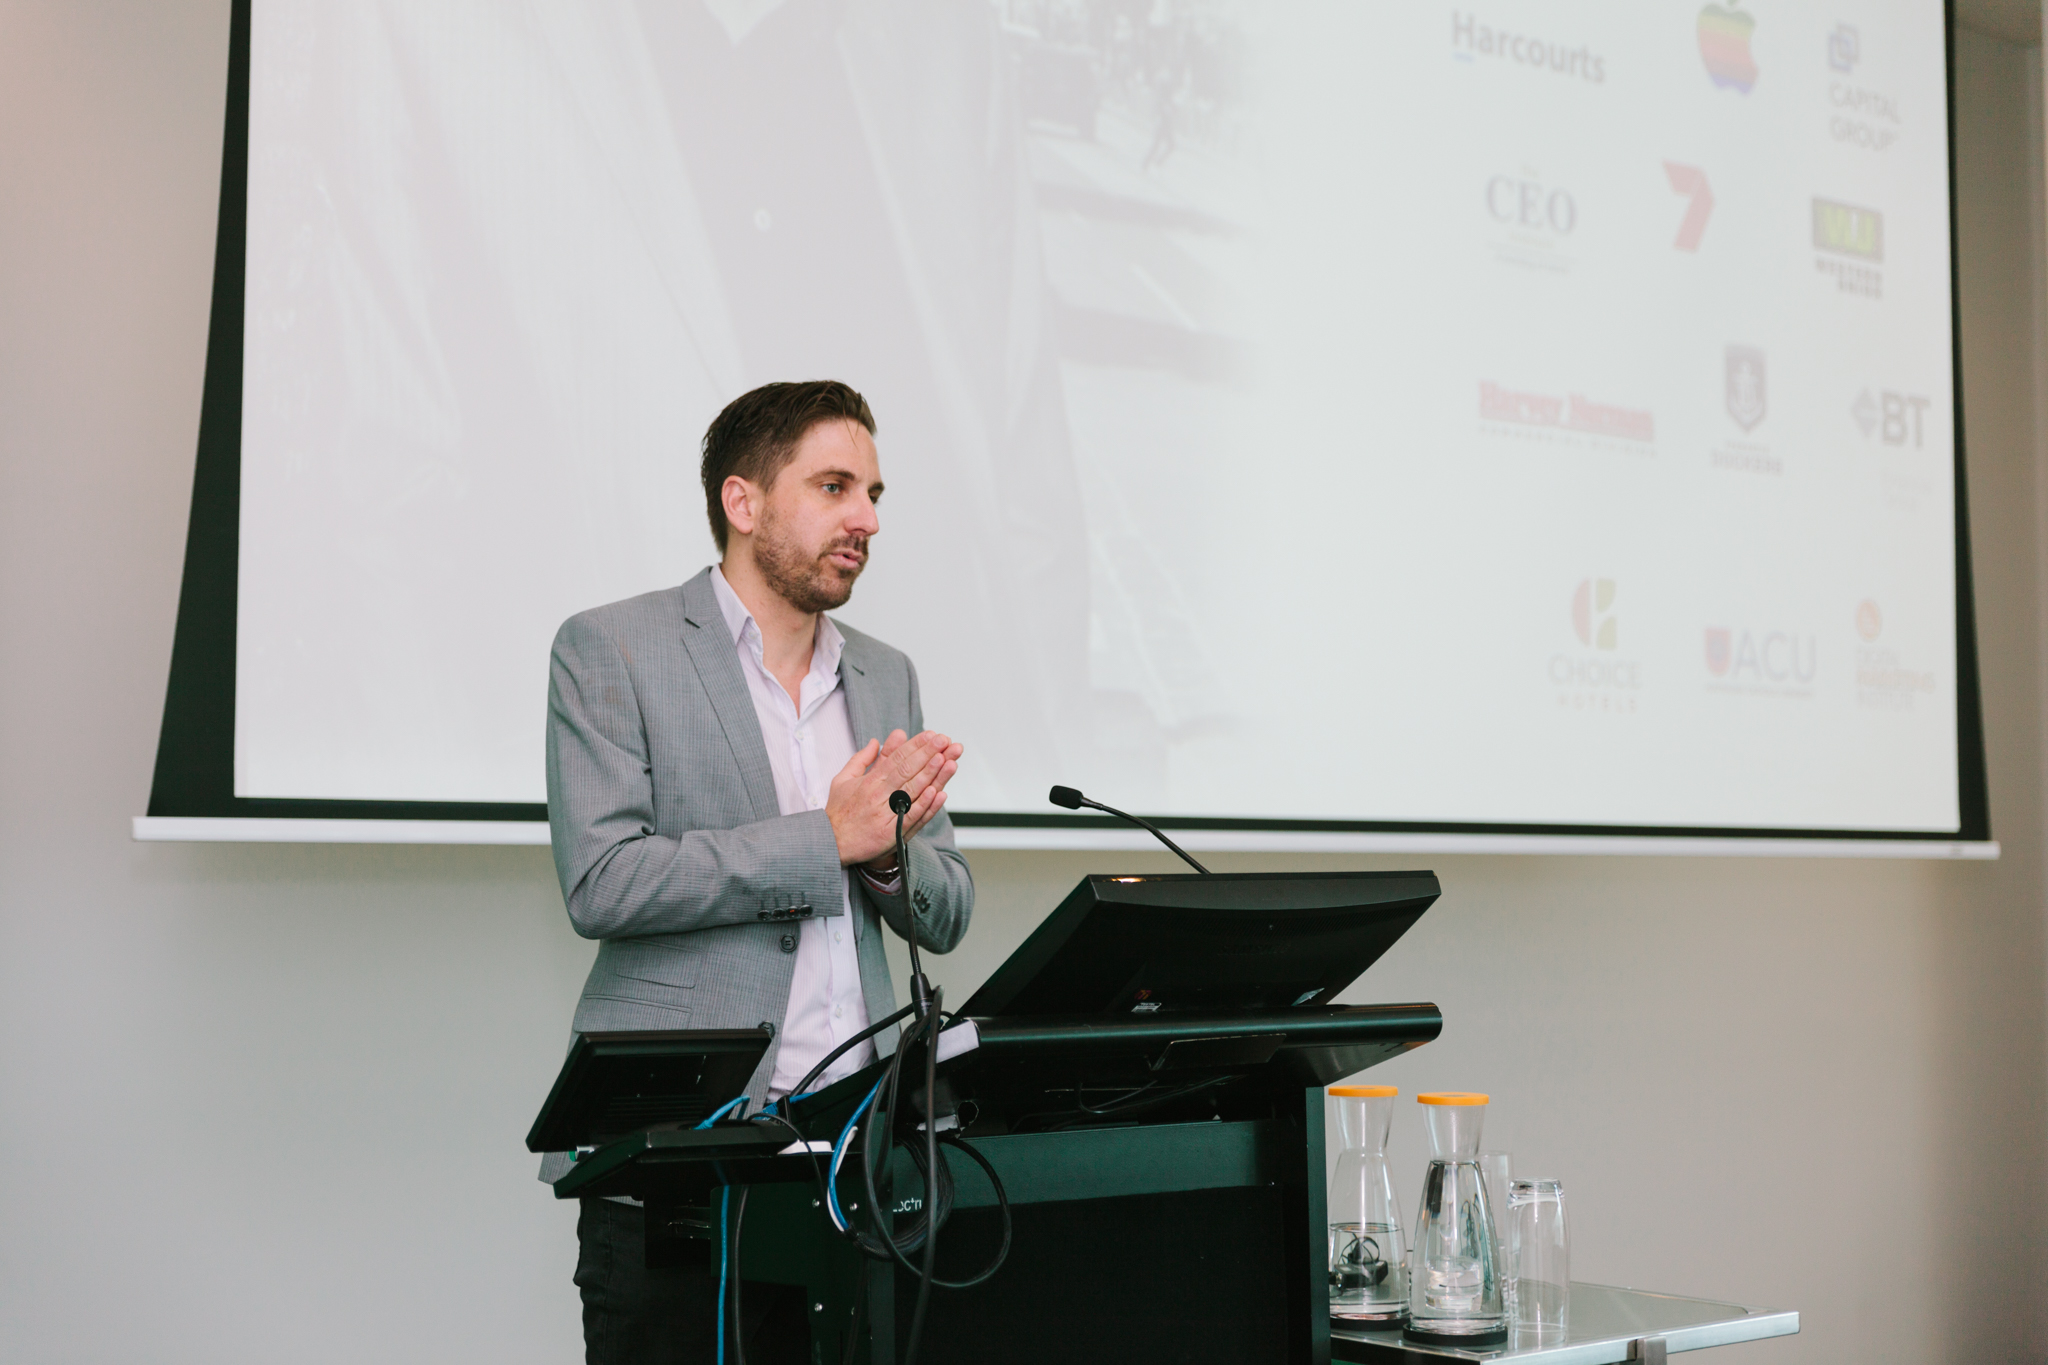 Social Media Speaker Nathanial Bibby Melbourne - LinkedIn Speaker | Digital Marketing Speaker | Social Media Speaker | Nathanial Bibby